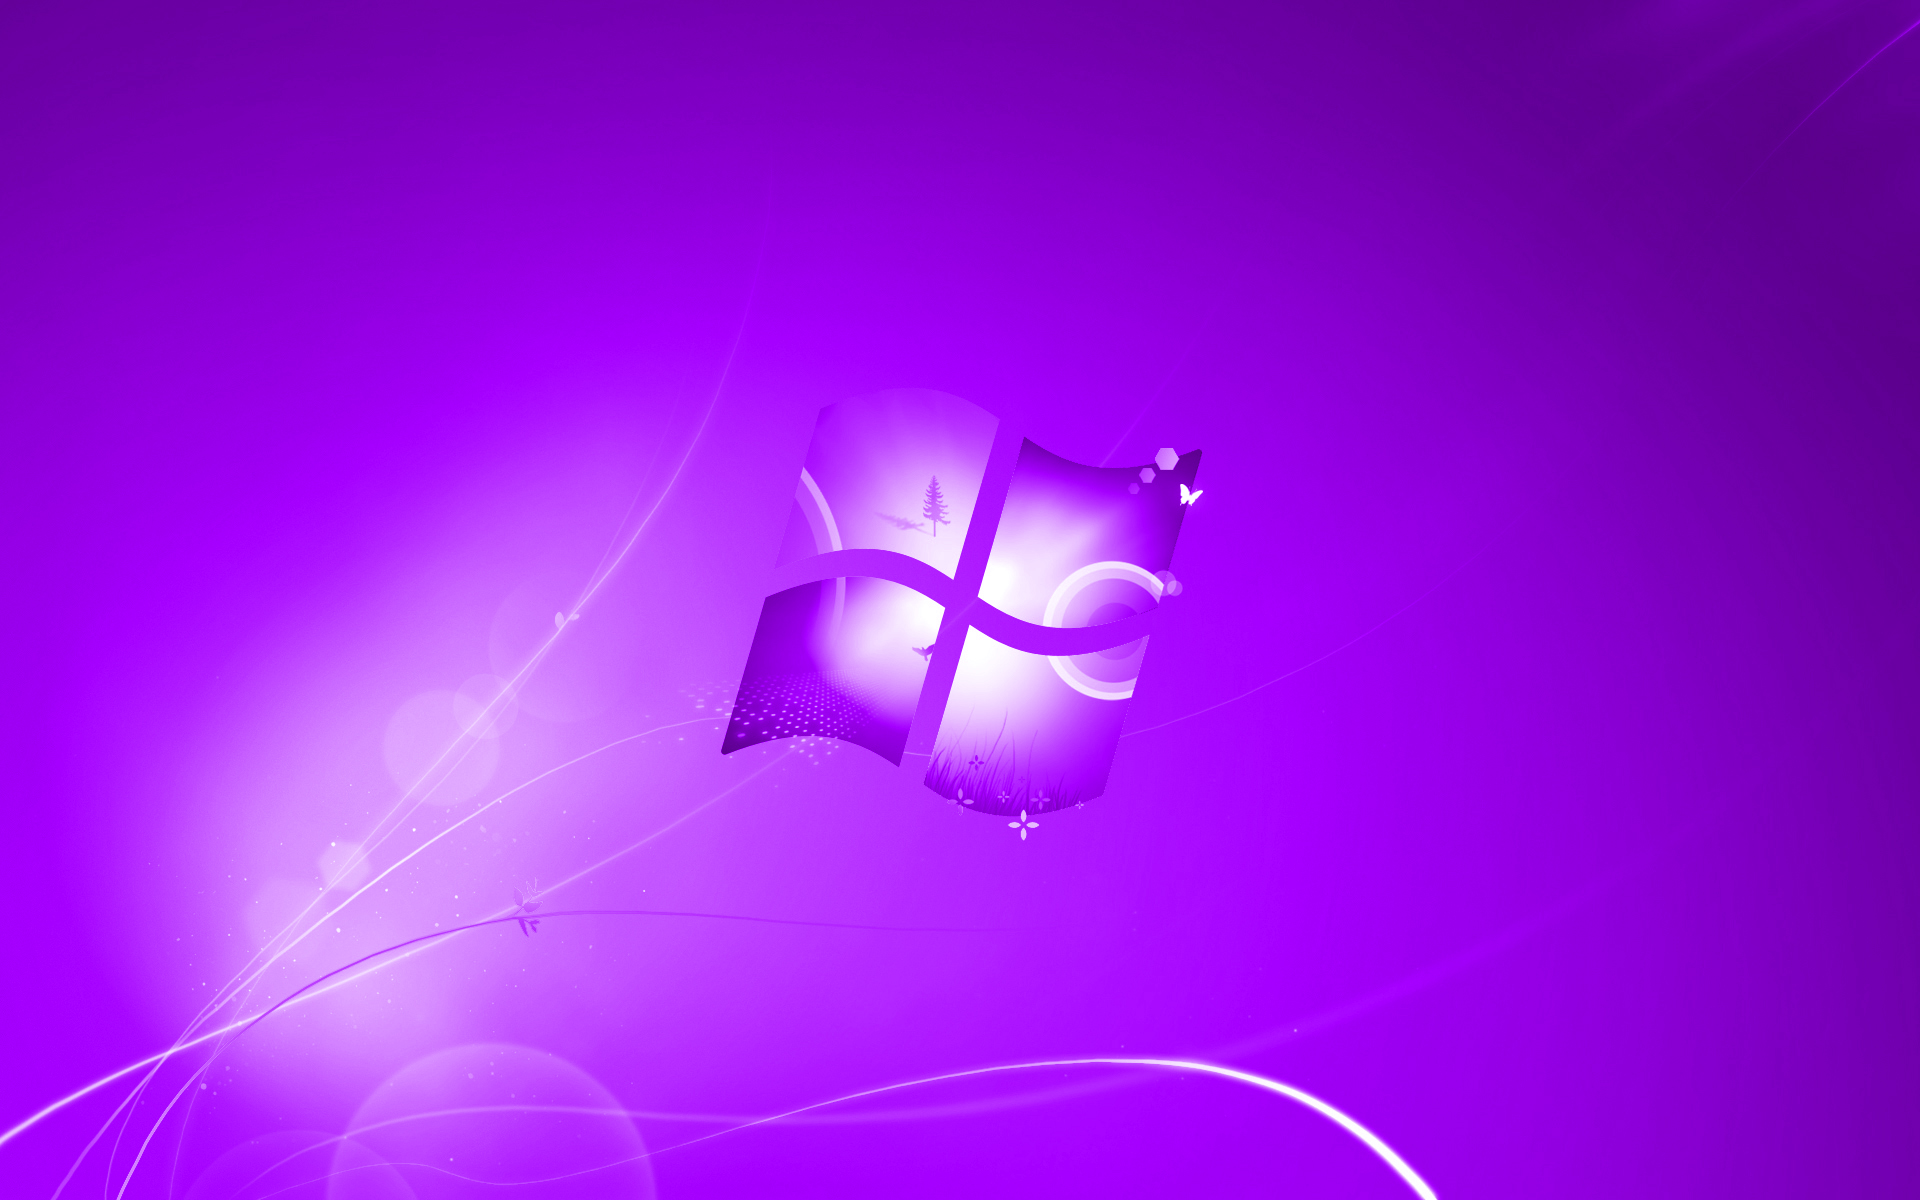 Windows 7 Purple Wallpaper Full HD Wallpapers HD 1920x1200